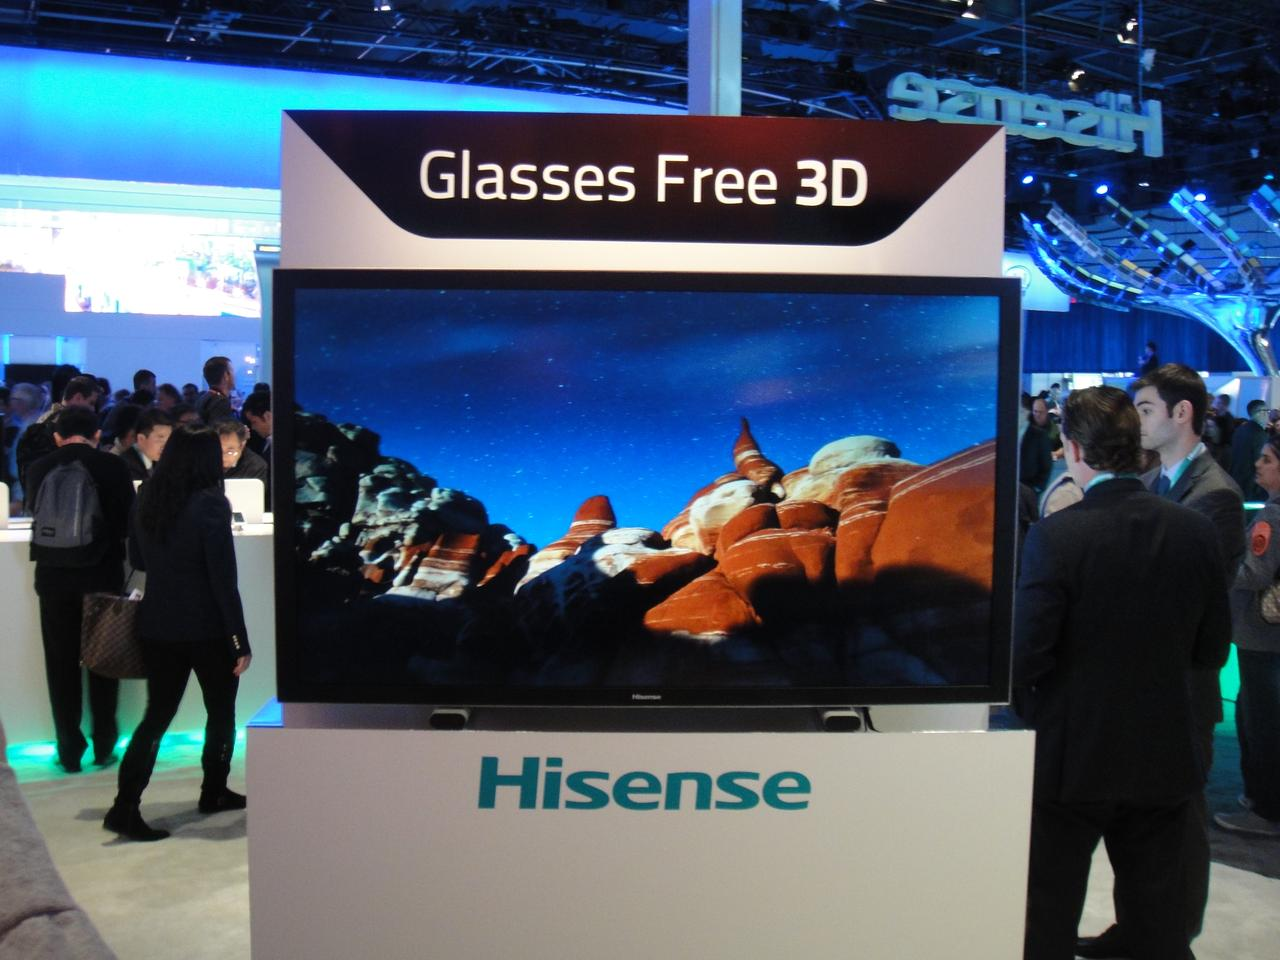 Hisense revealed new advancements in their own glasses-free 3D technology at CES with the 60-inch GF60XT980 television concept